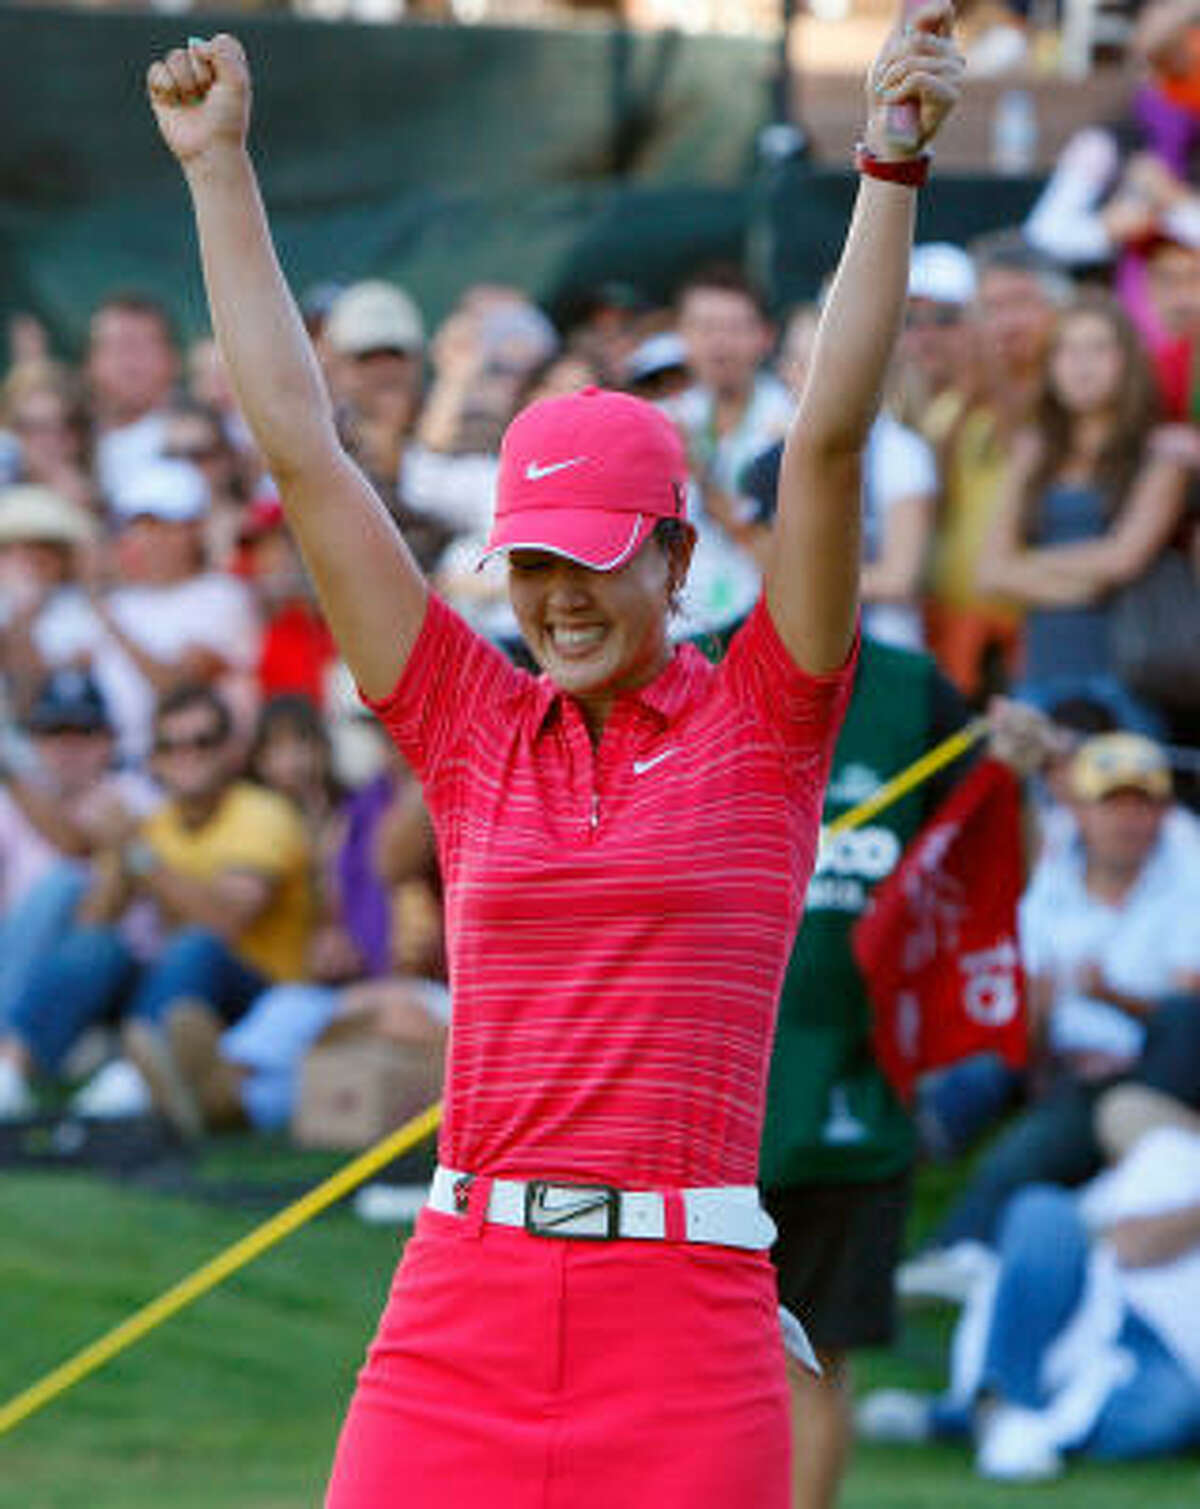 Michelle Wie reacts after winning the Lorena Ochoa Invitational at Guadalajara Country Club.